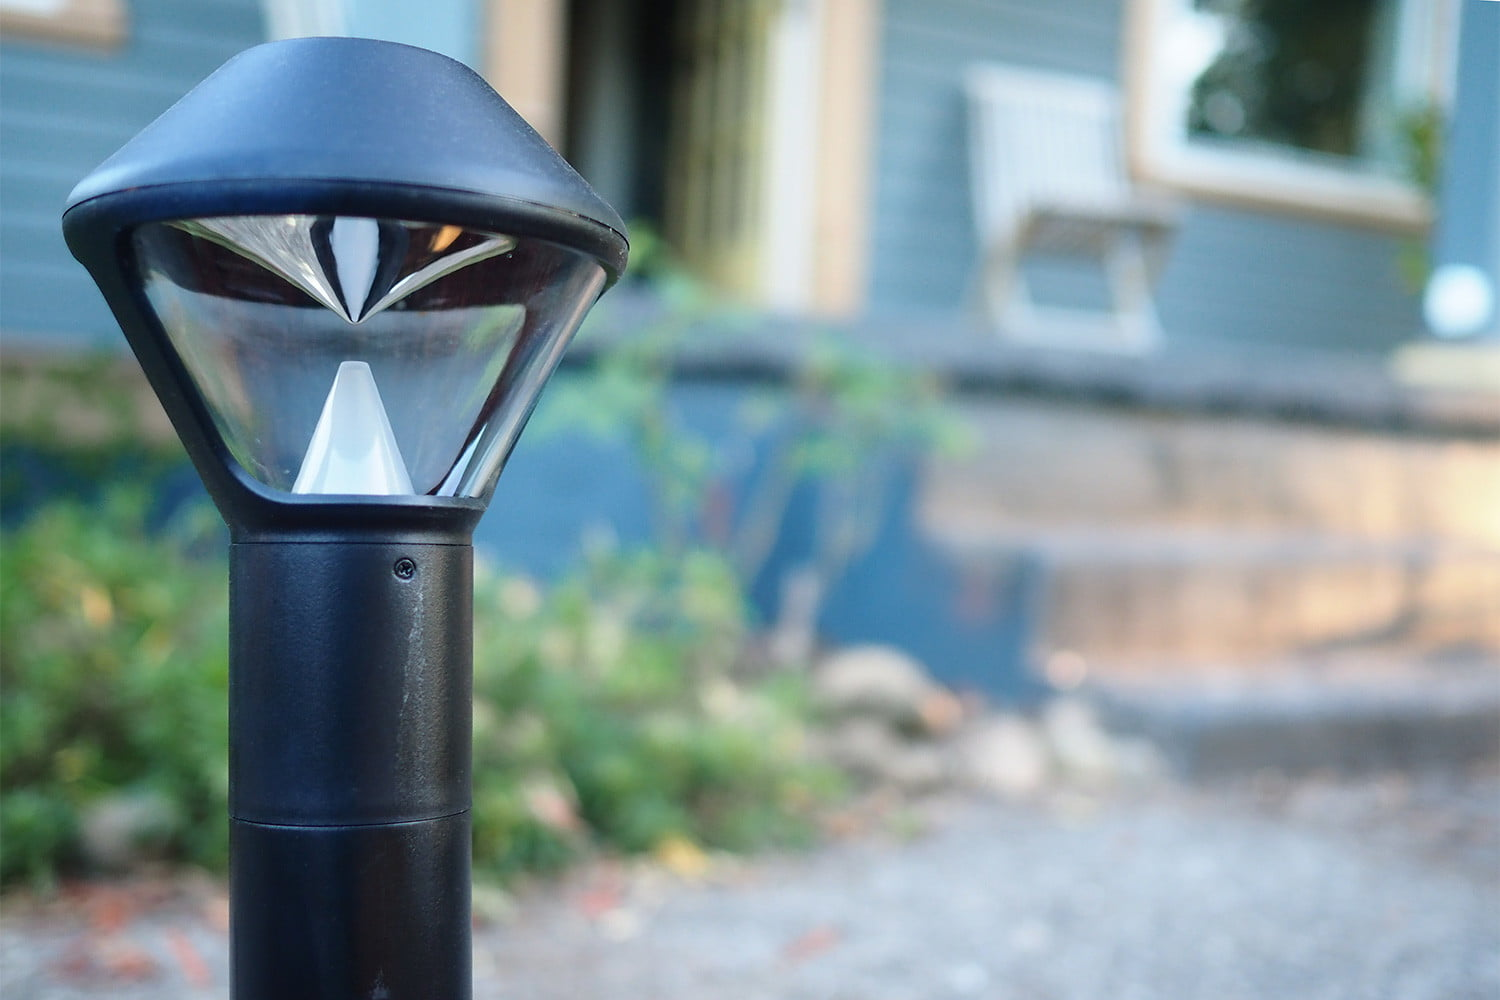 First Ring conquered your porch. Now it wants to light up your lawn